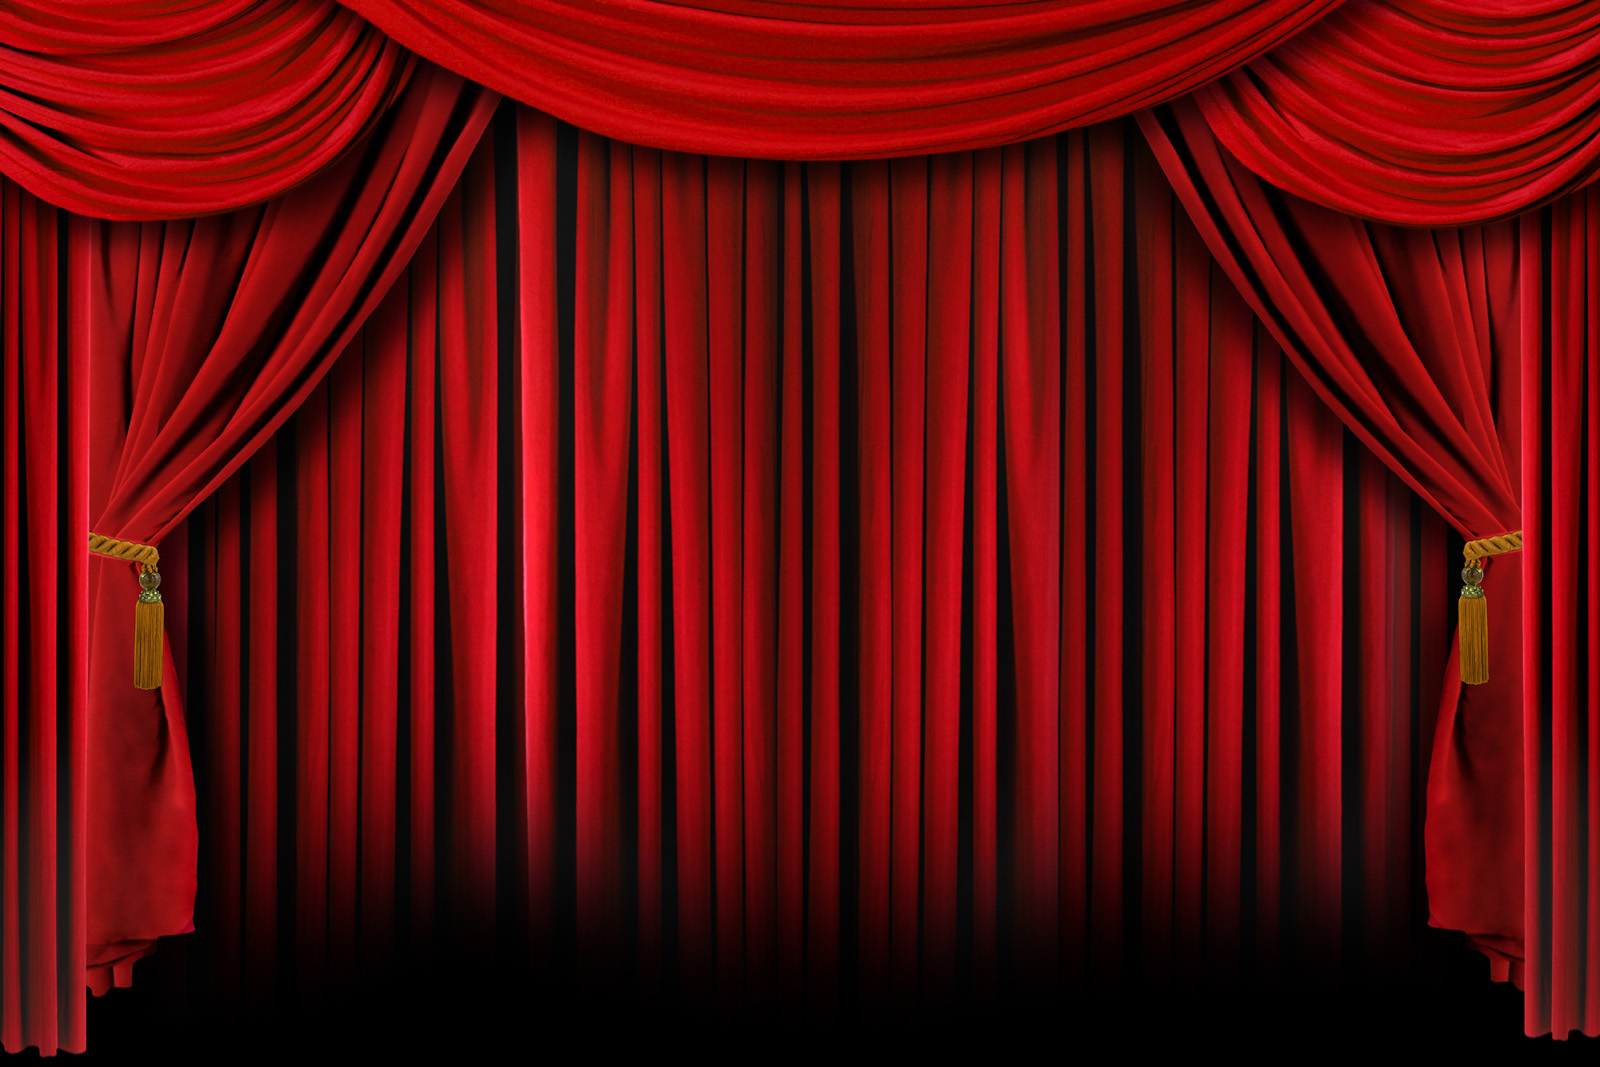 Movie Curtain Background Images & Pictures - Becuo